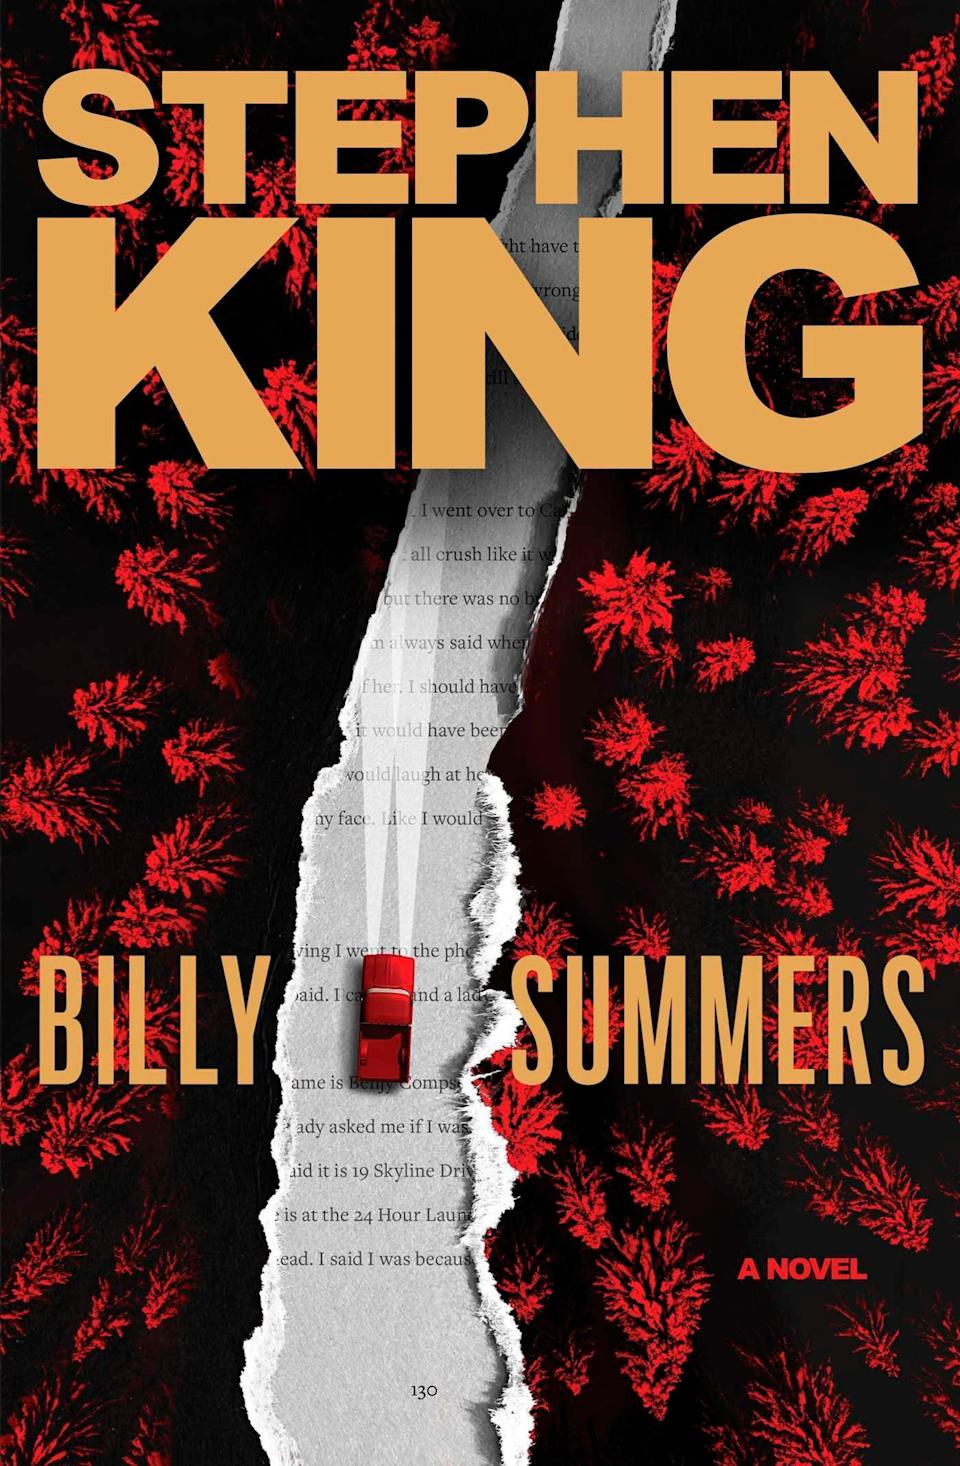 Book Review - Billy Summers (ASSOCIATED PRESS)